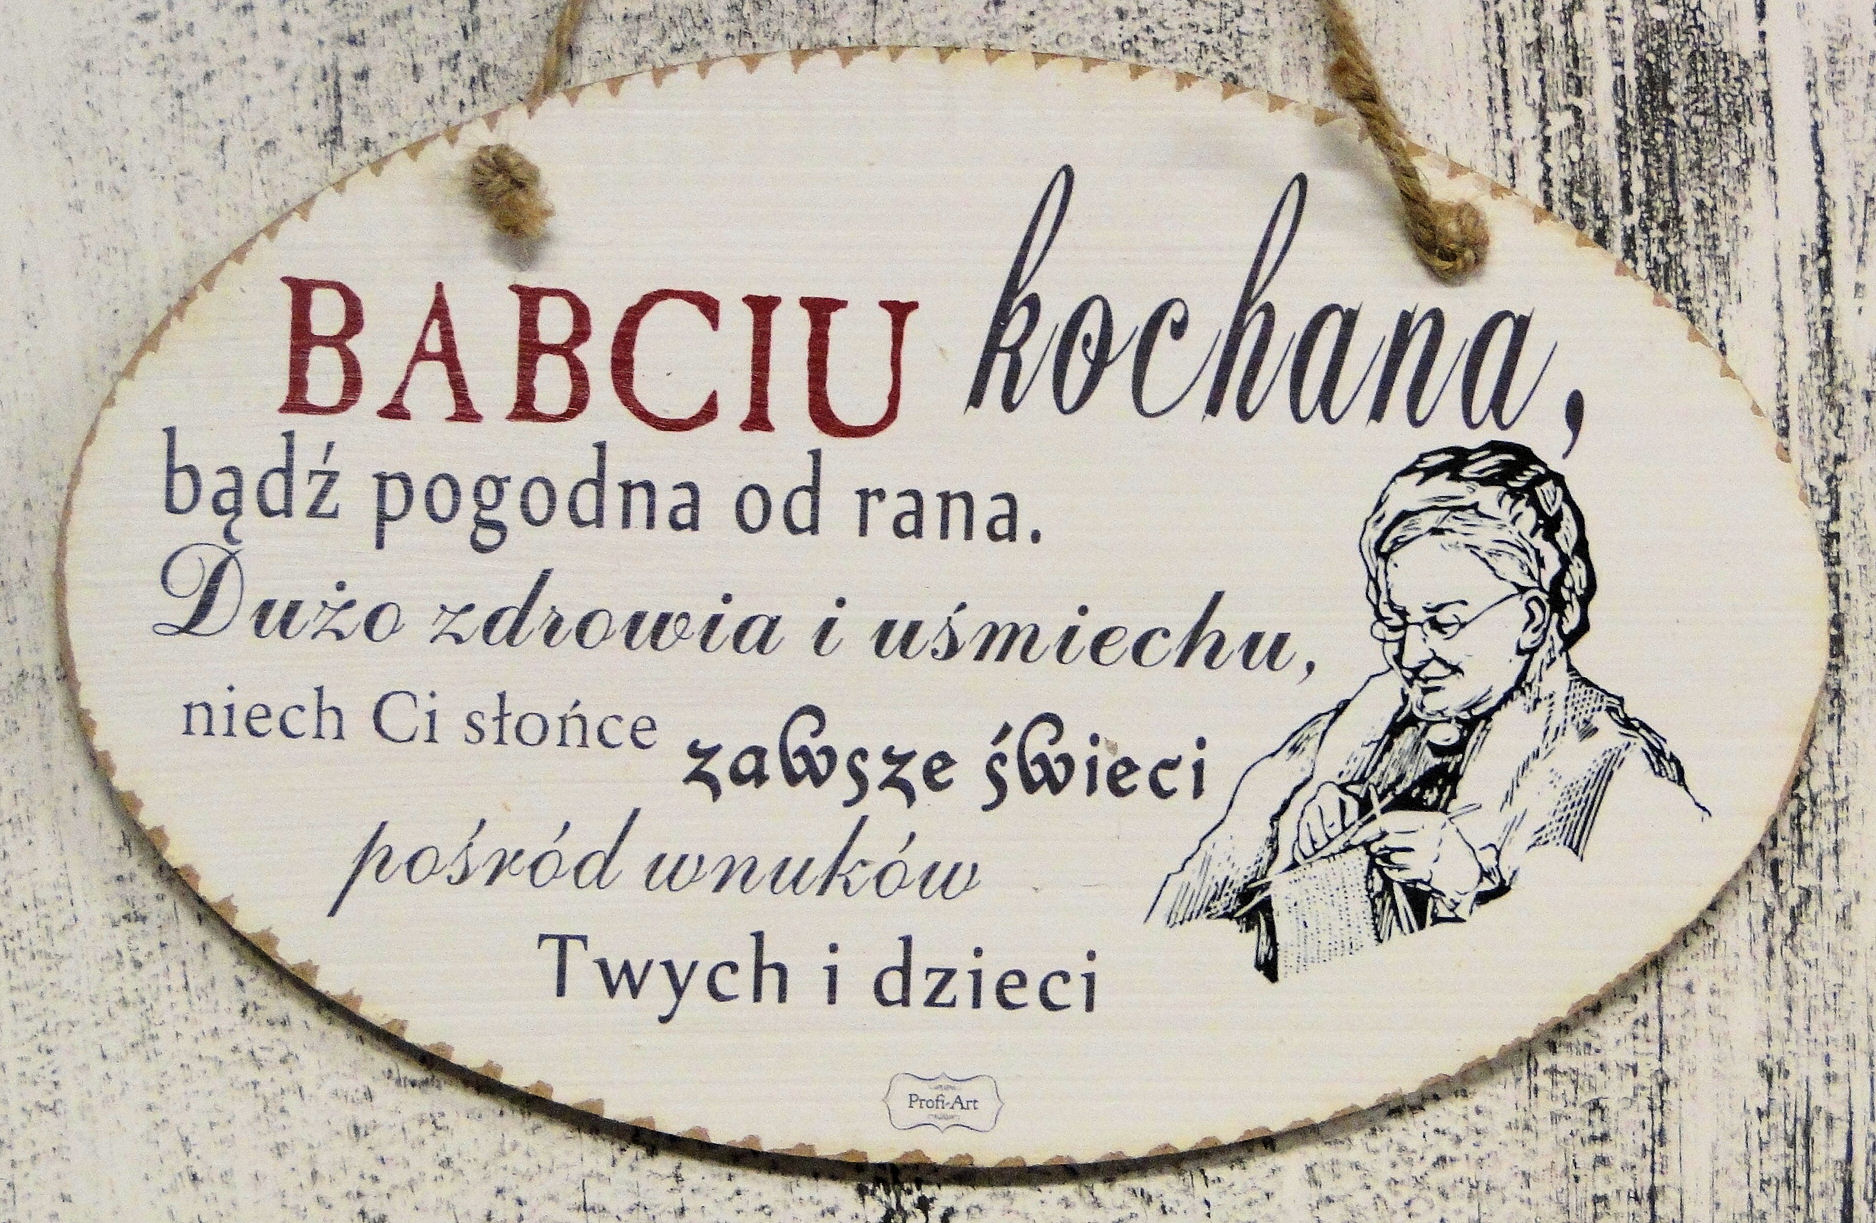 BABCIU KOCHANA TV722.jpg